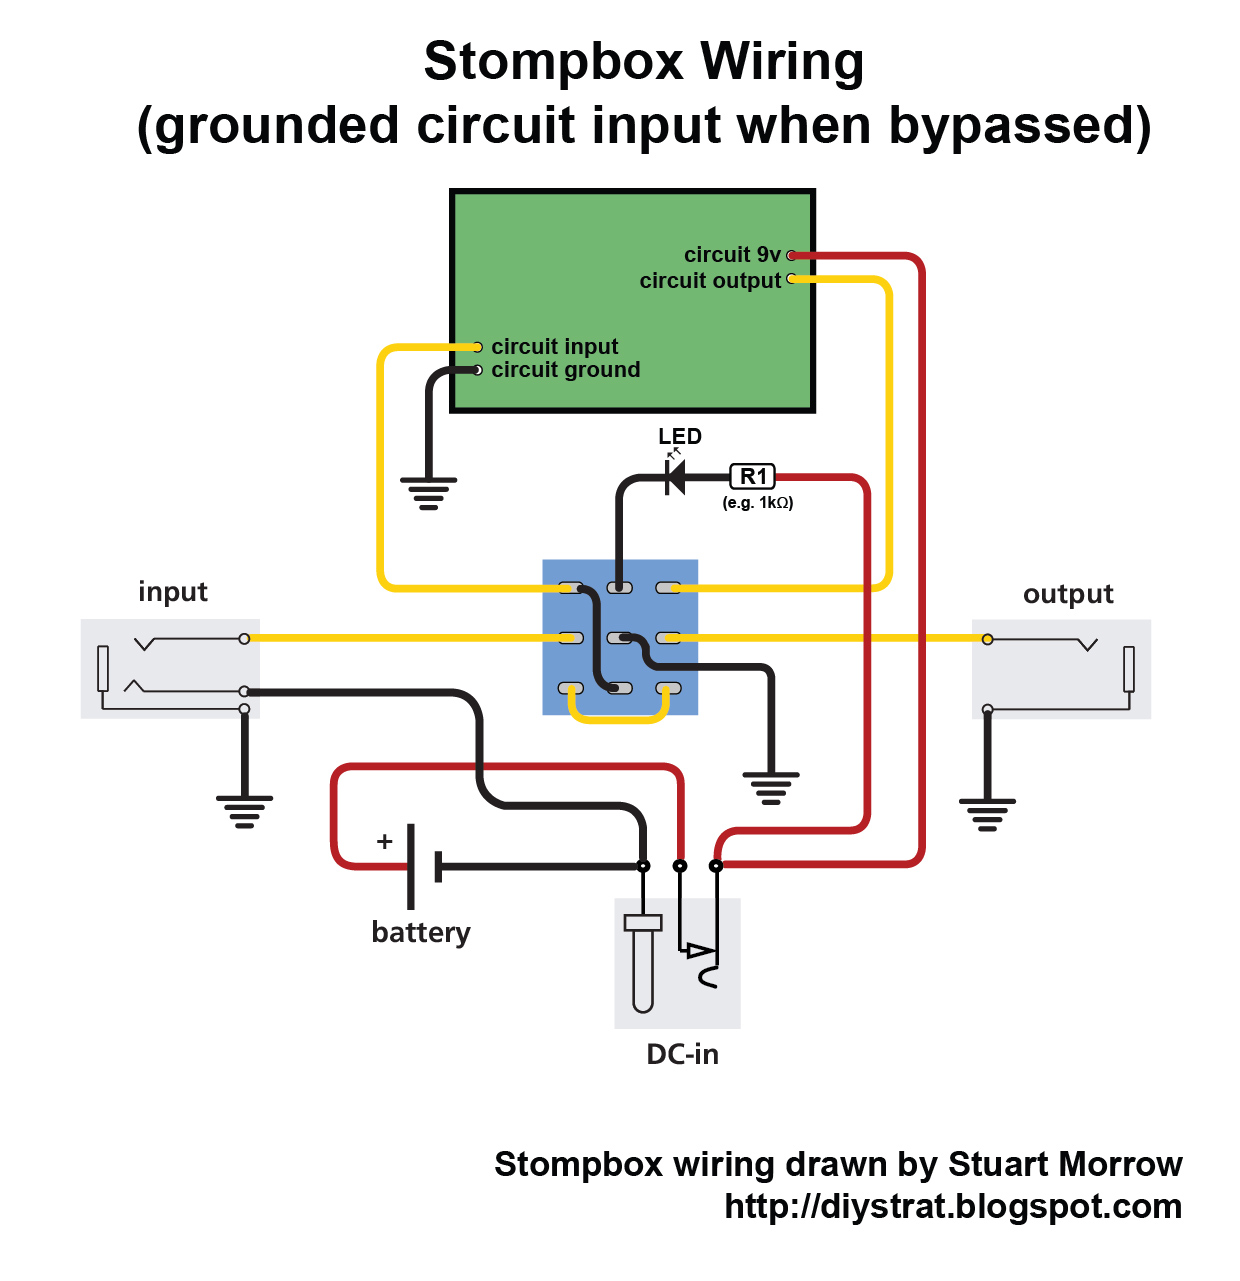 small resolution of stomp box wiring harness wiring diagrams stomp box wiring harness wiring diagrams schema wiring harness diagram